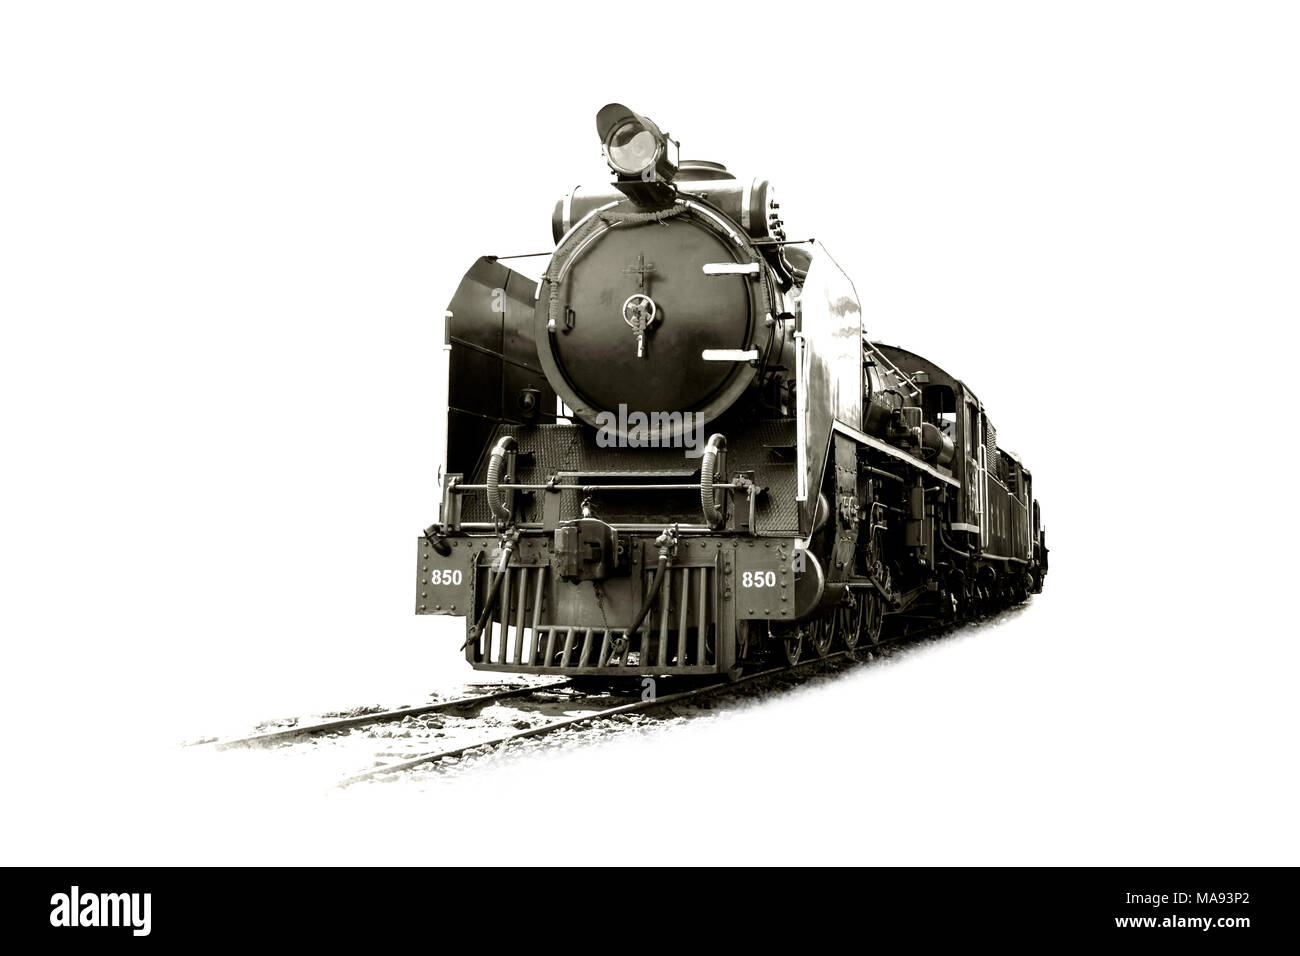 Image black and white retro vintage style of Train Old steam locomotive Pacific on the tracks from Thailand isolated on white background. - Stock Image